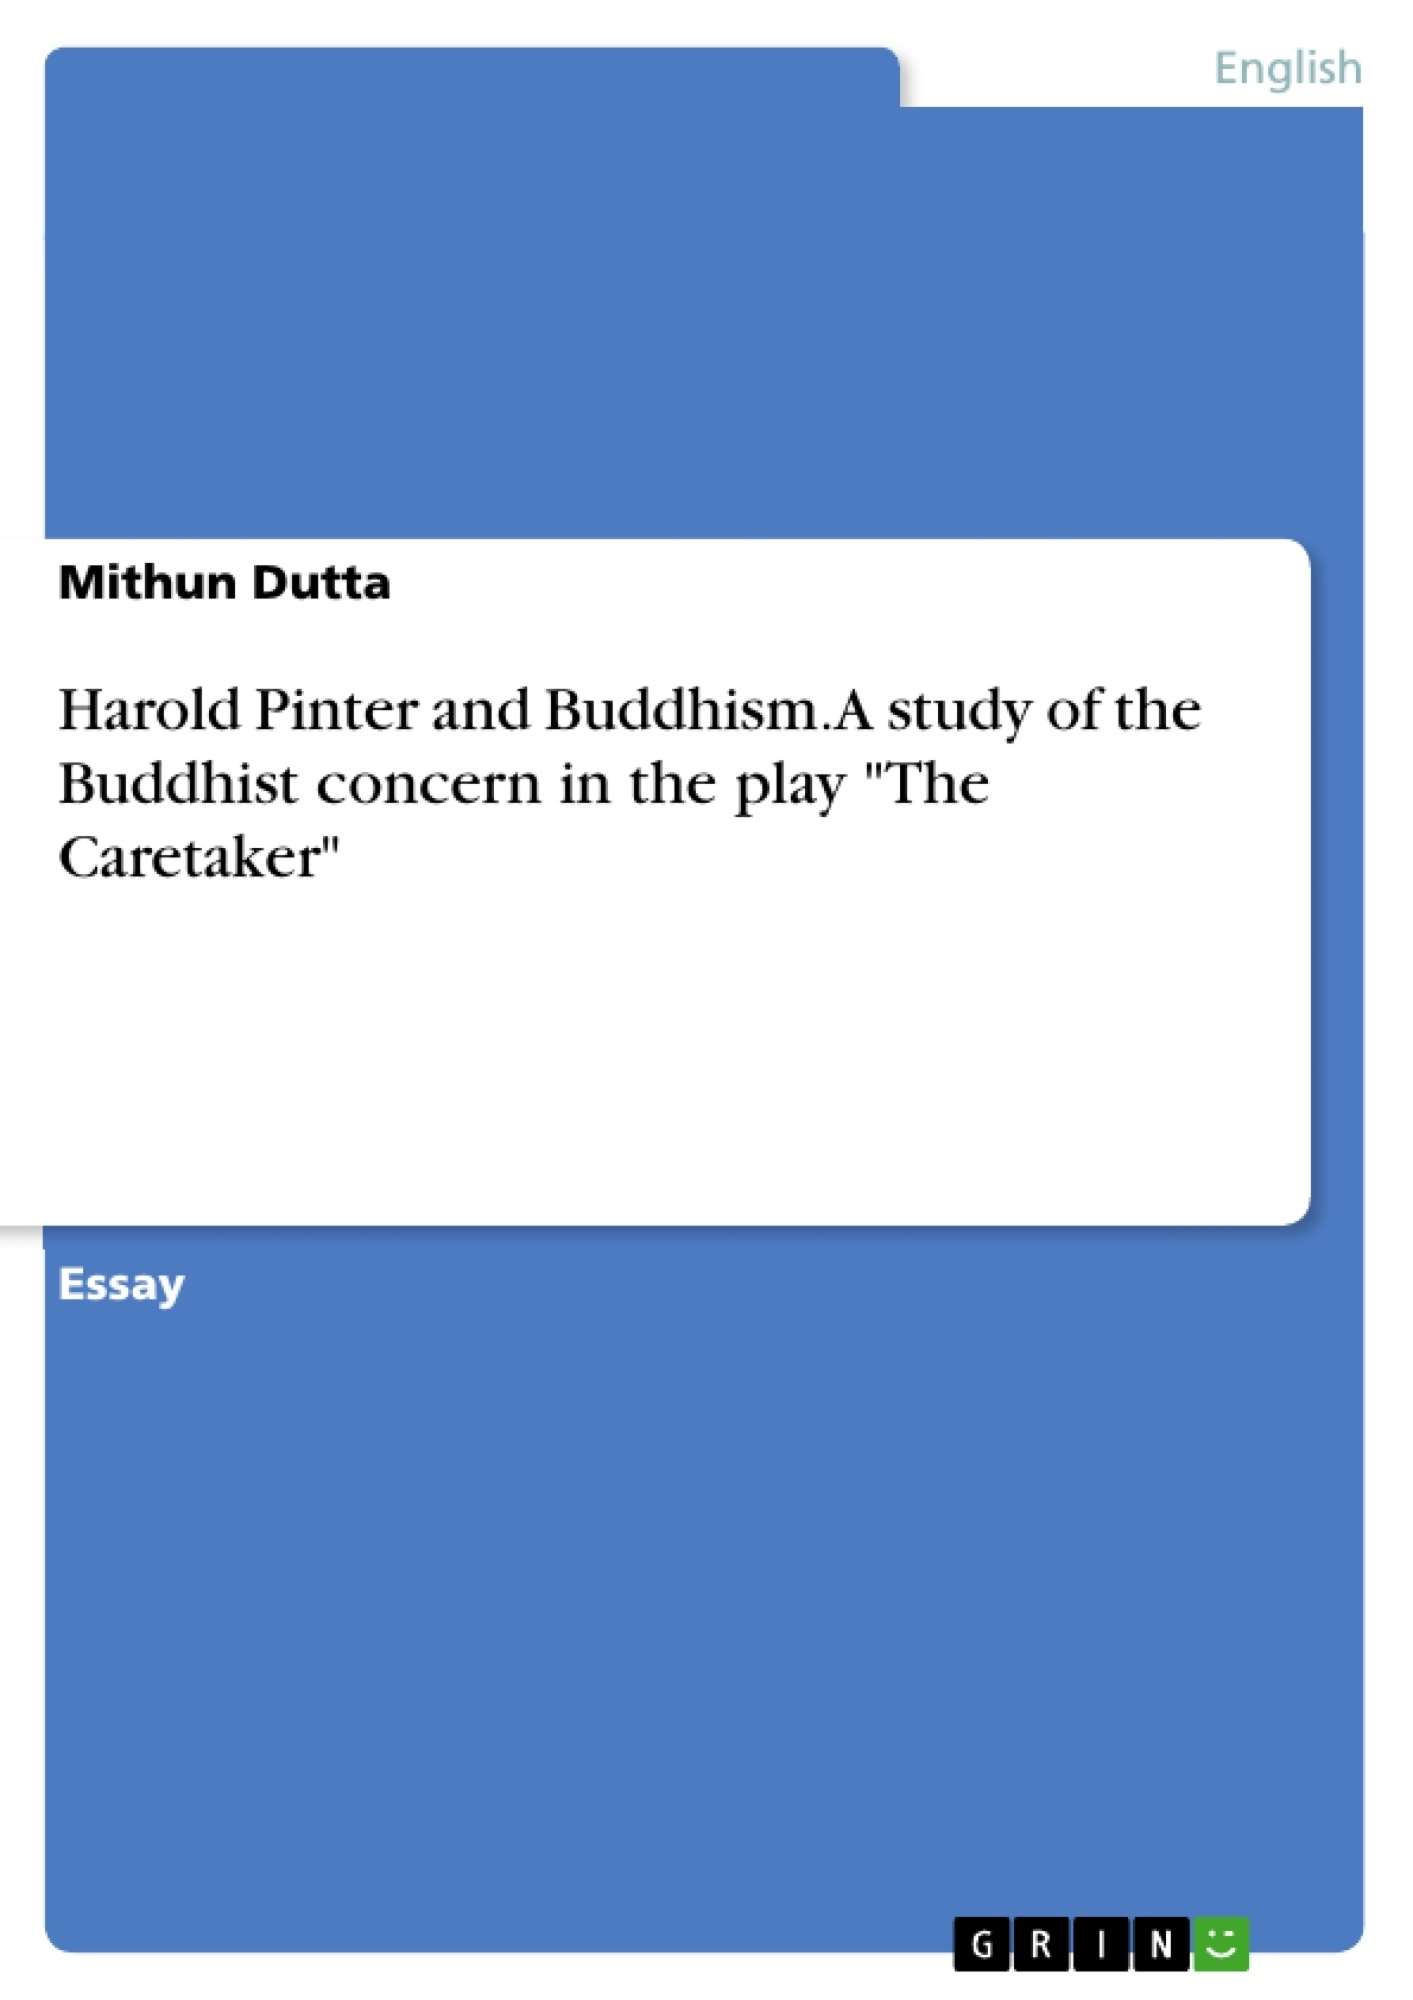 Harold Pinter And Buddhism A Study Of The Buddhist Concern In The